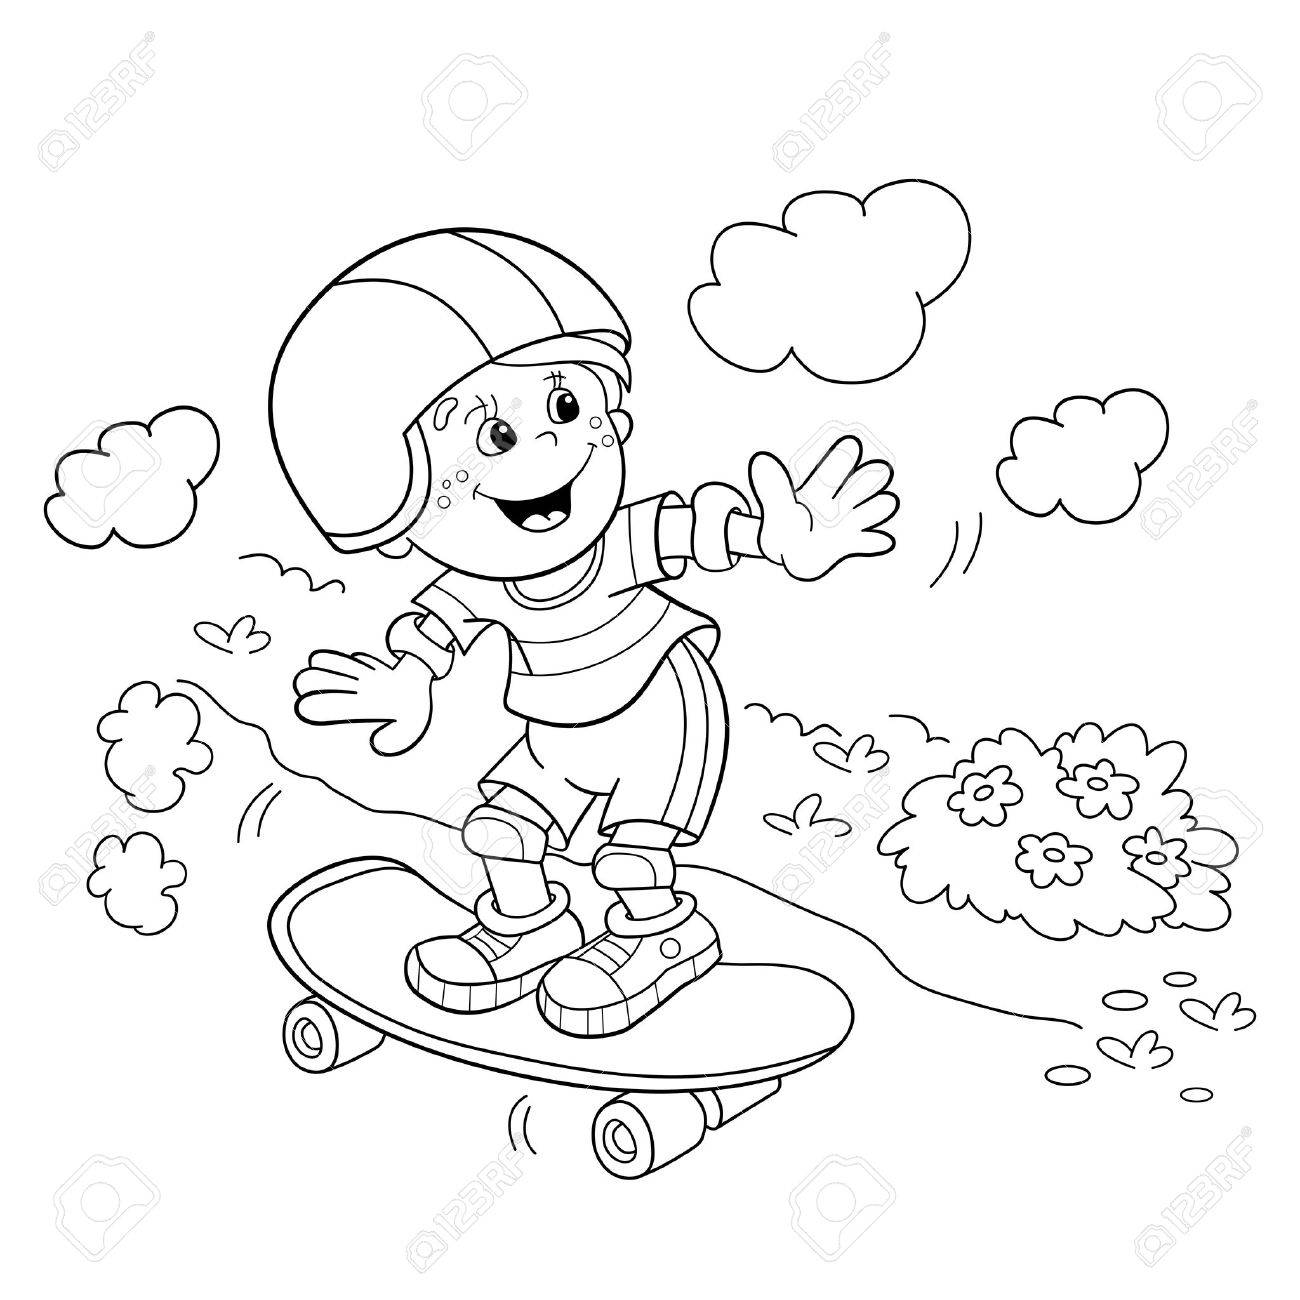 Coloring page outline of cartoon boy on the skateboard coloring